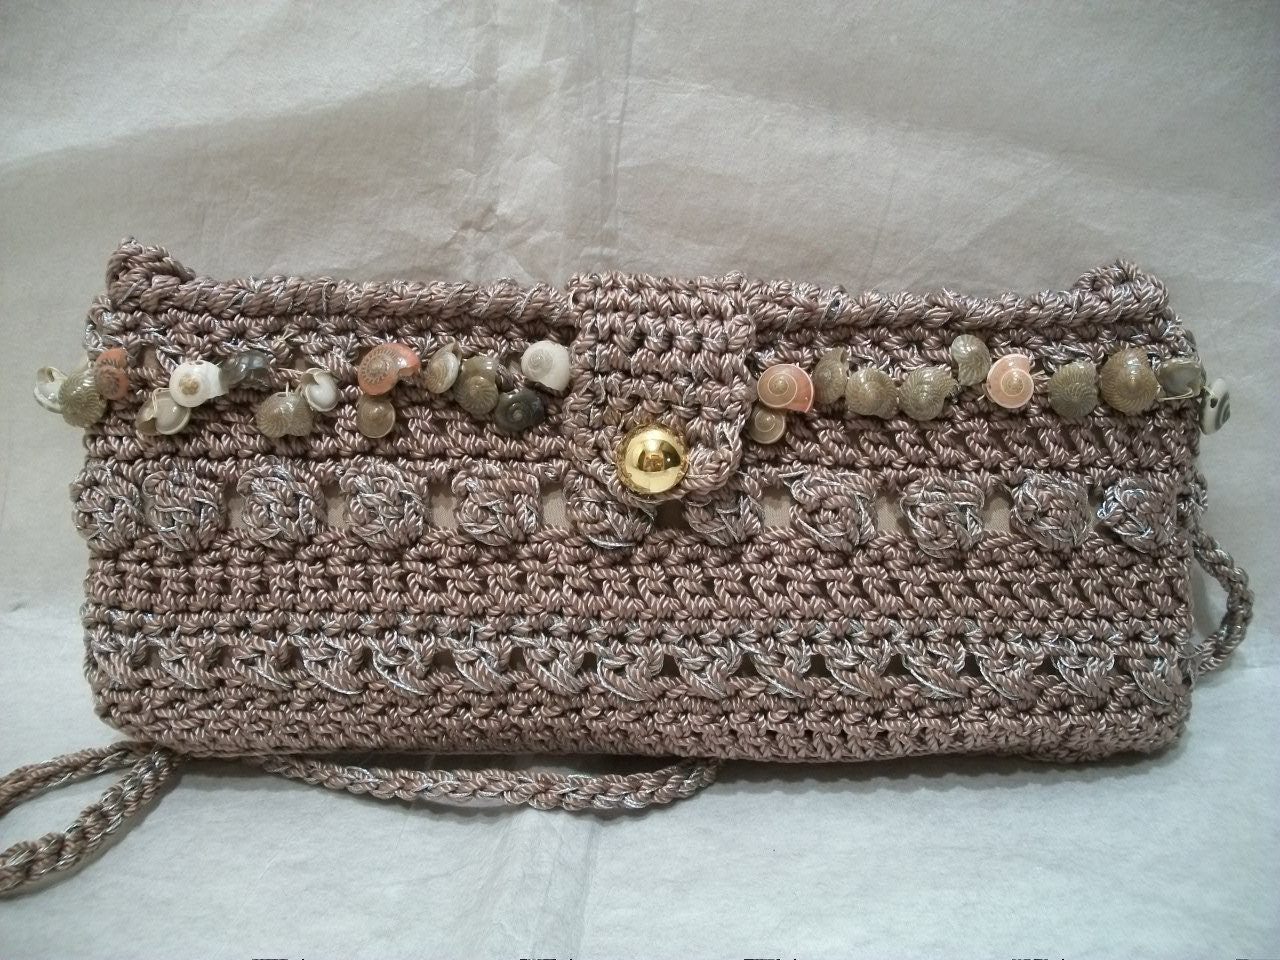 Handmade Crochet Handbags : Unavailable Listing on Etsy